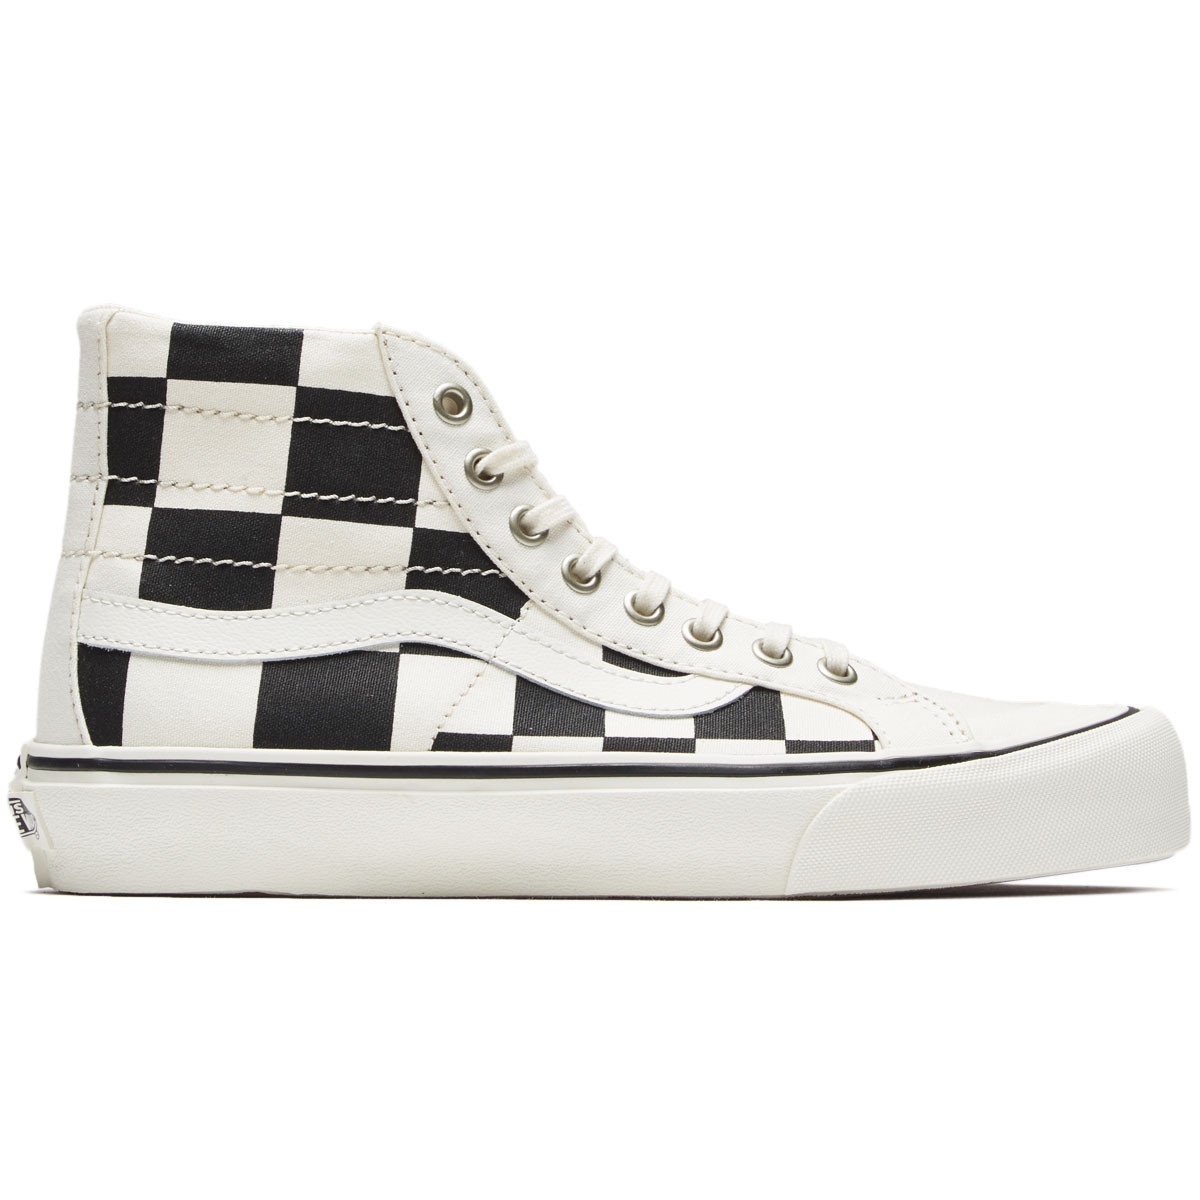 936f7c2ee4 Vans Womens Sk8-Hi 138 Decon SF Shoes - Black White - 4.0